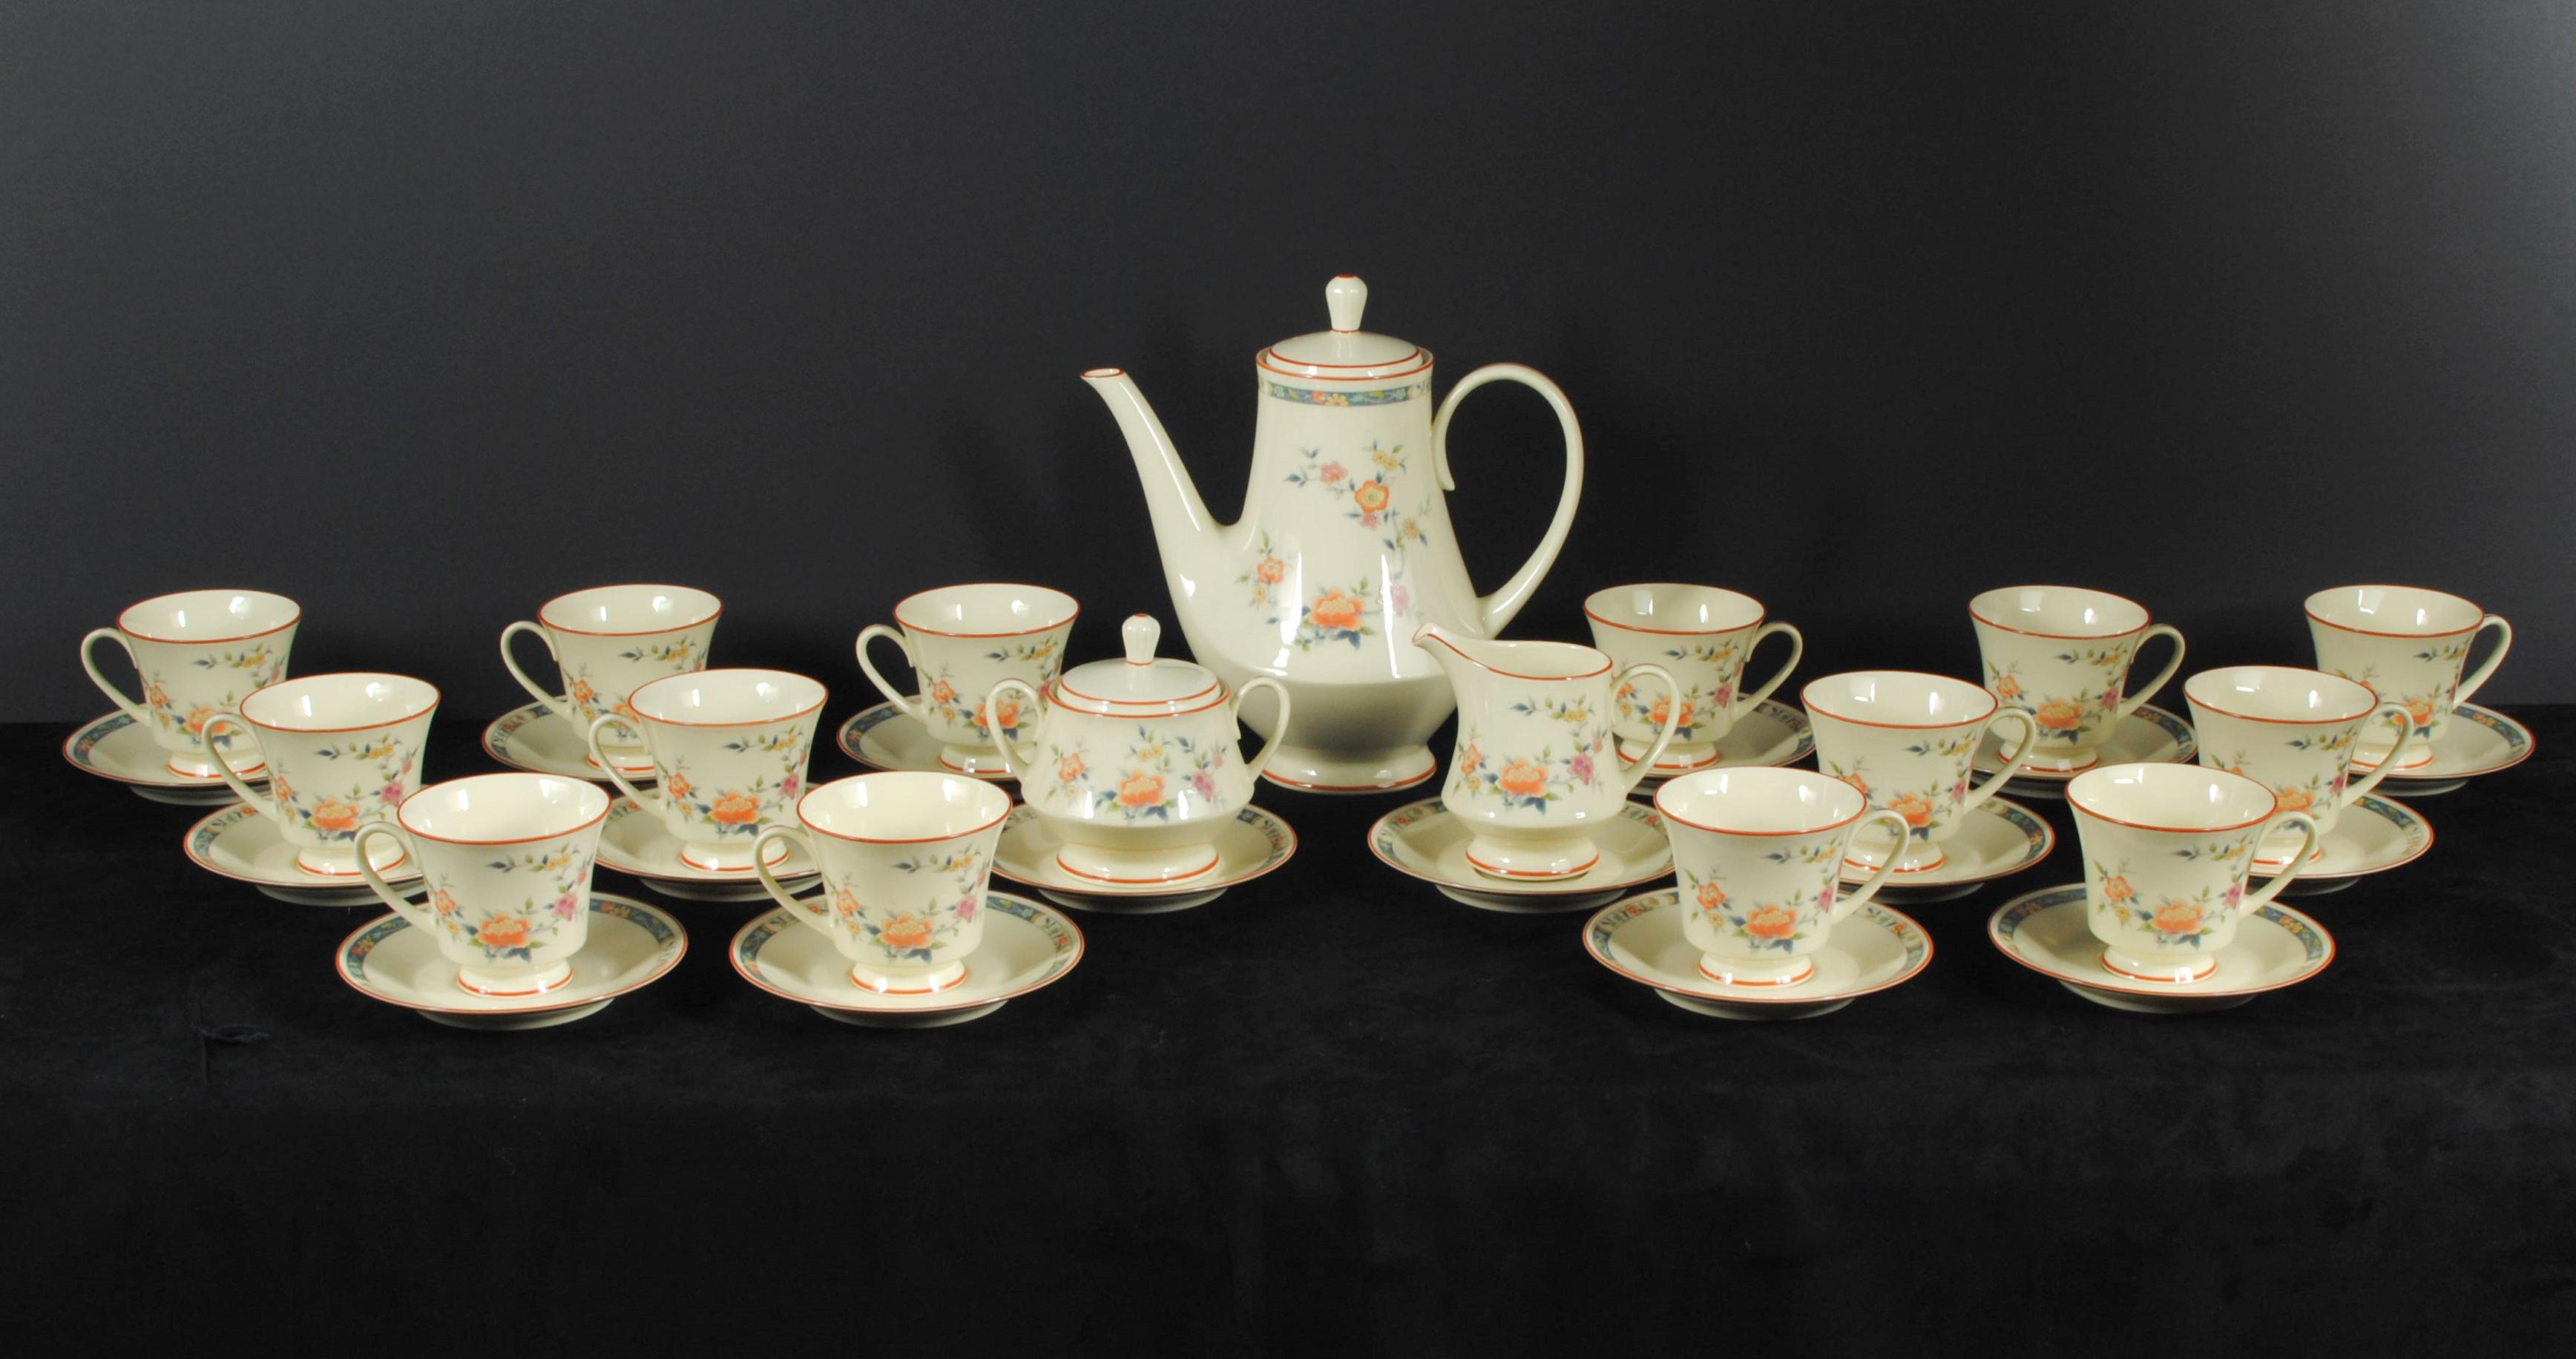 Noritake China Tea Set China Song 8165W83 (33 Pcs) Rare